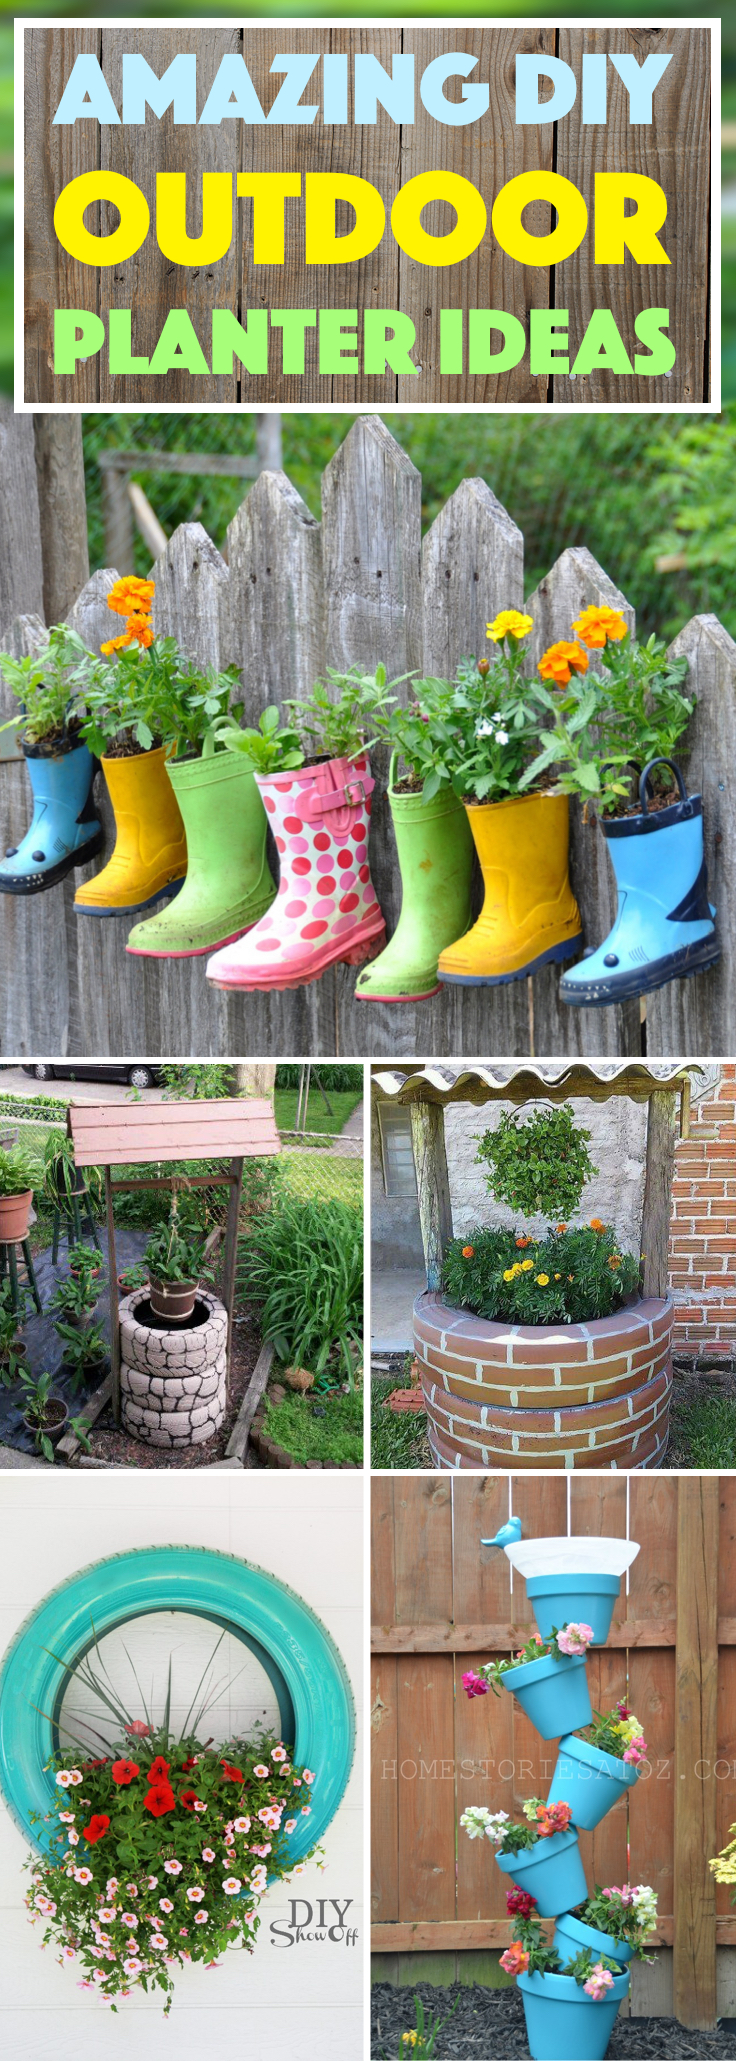 20 amazing diy outdoor planter ideas to make your garden for Garden planter ideas